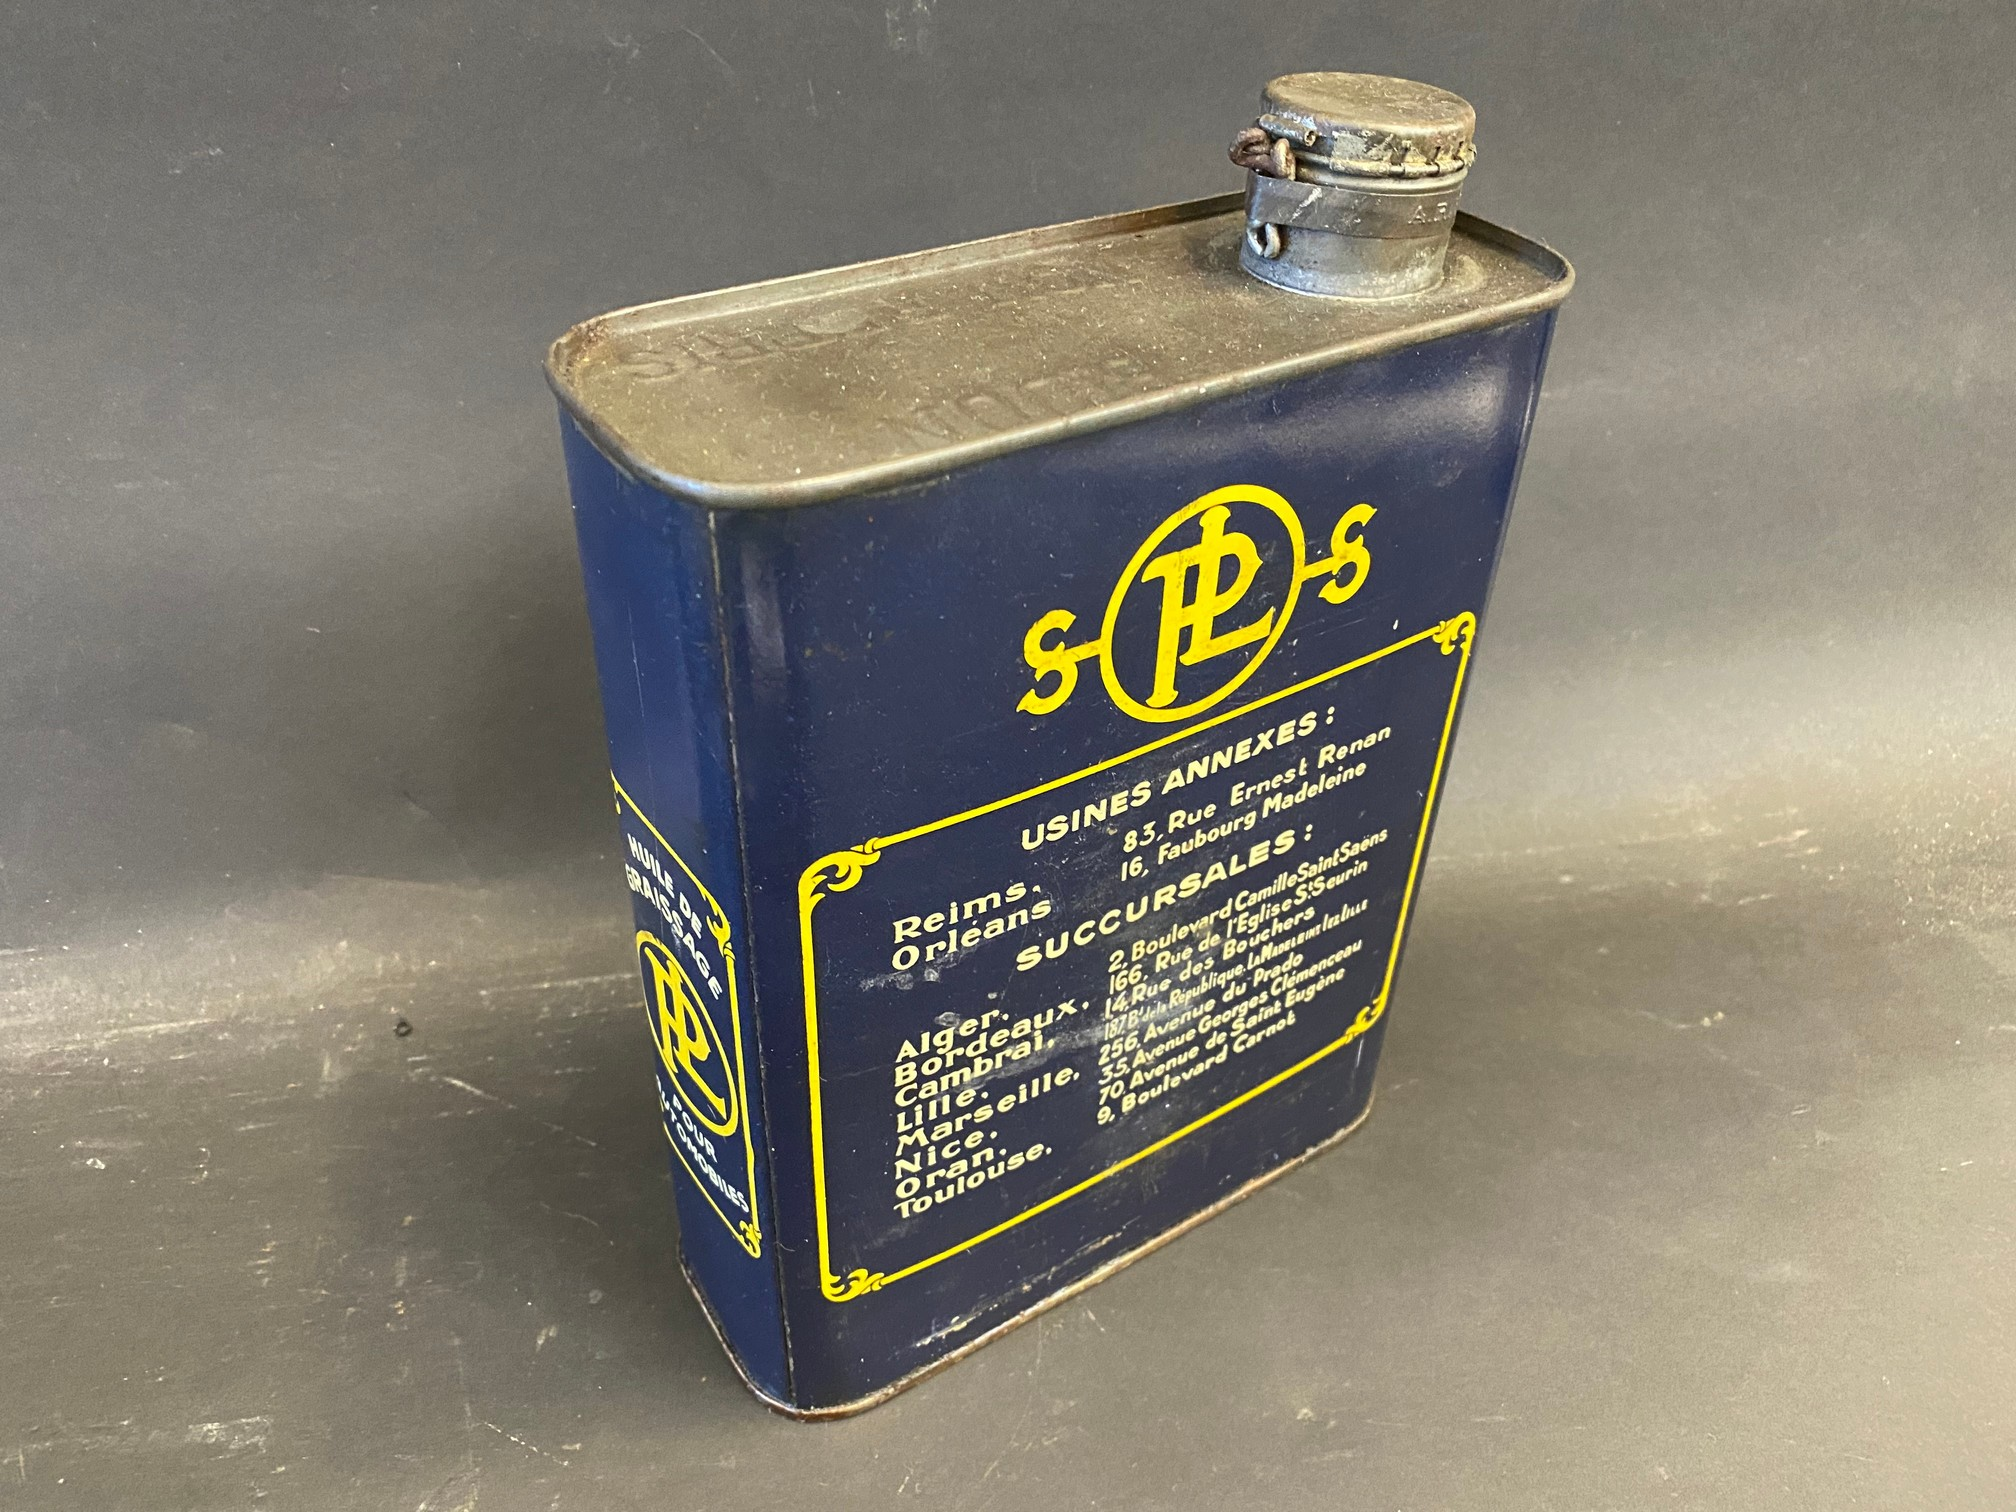 A very rare Panhard & Levassor motor oil can, in very good unopened condition. - Image 2 of 4